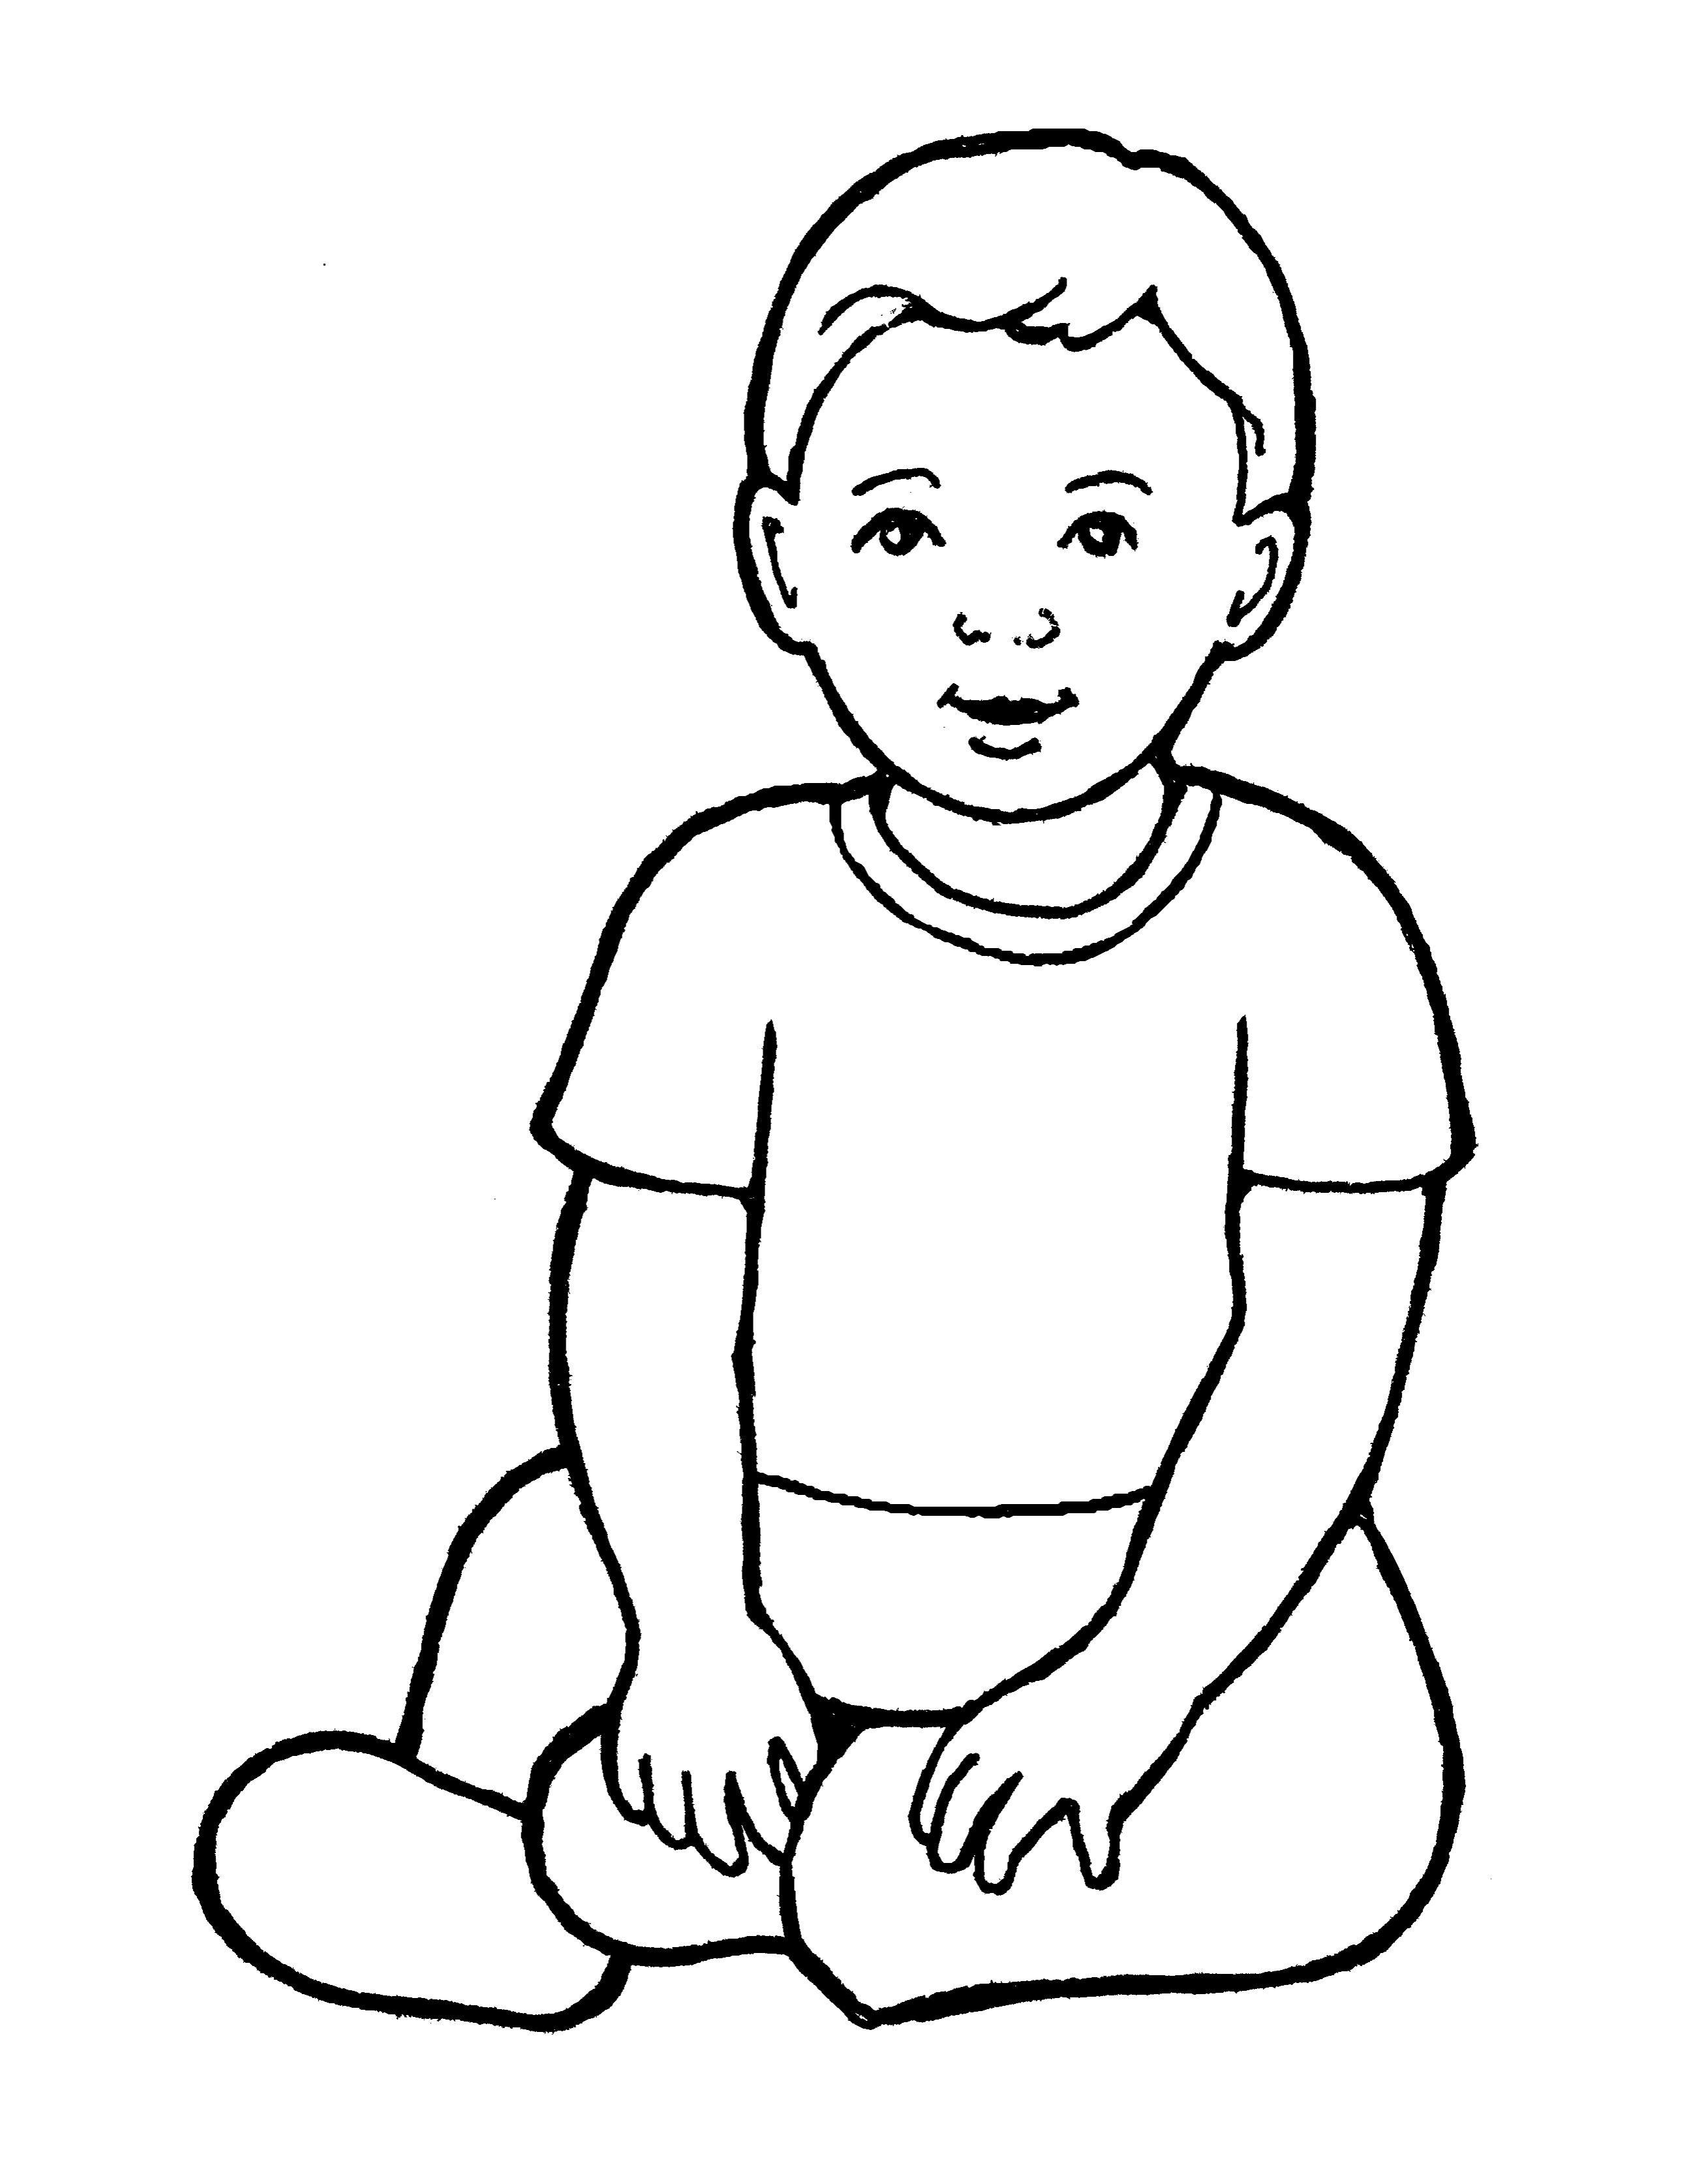 An illustration of a baby boy from the nursery manual Behold Your Little Ones (2008), page 59.